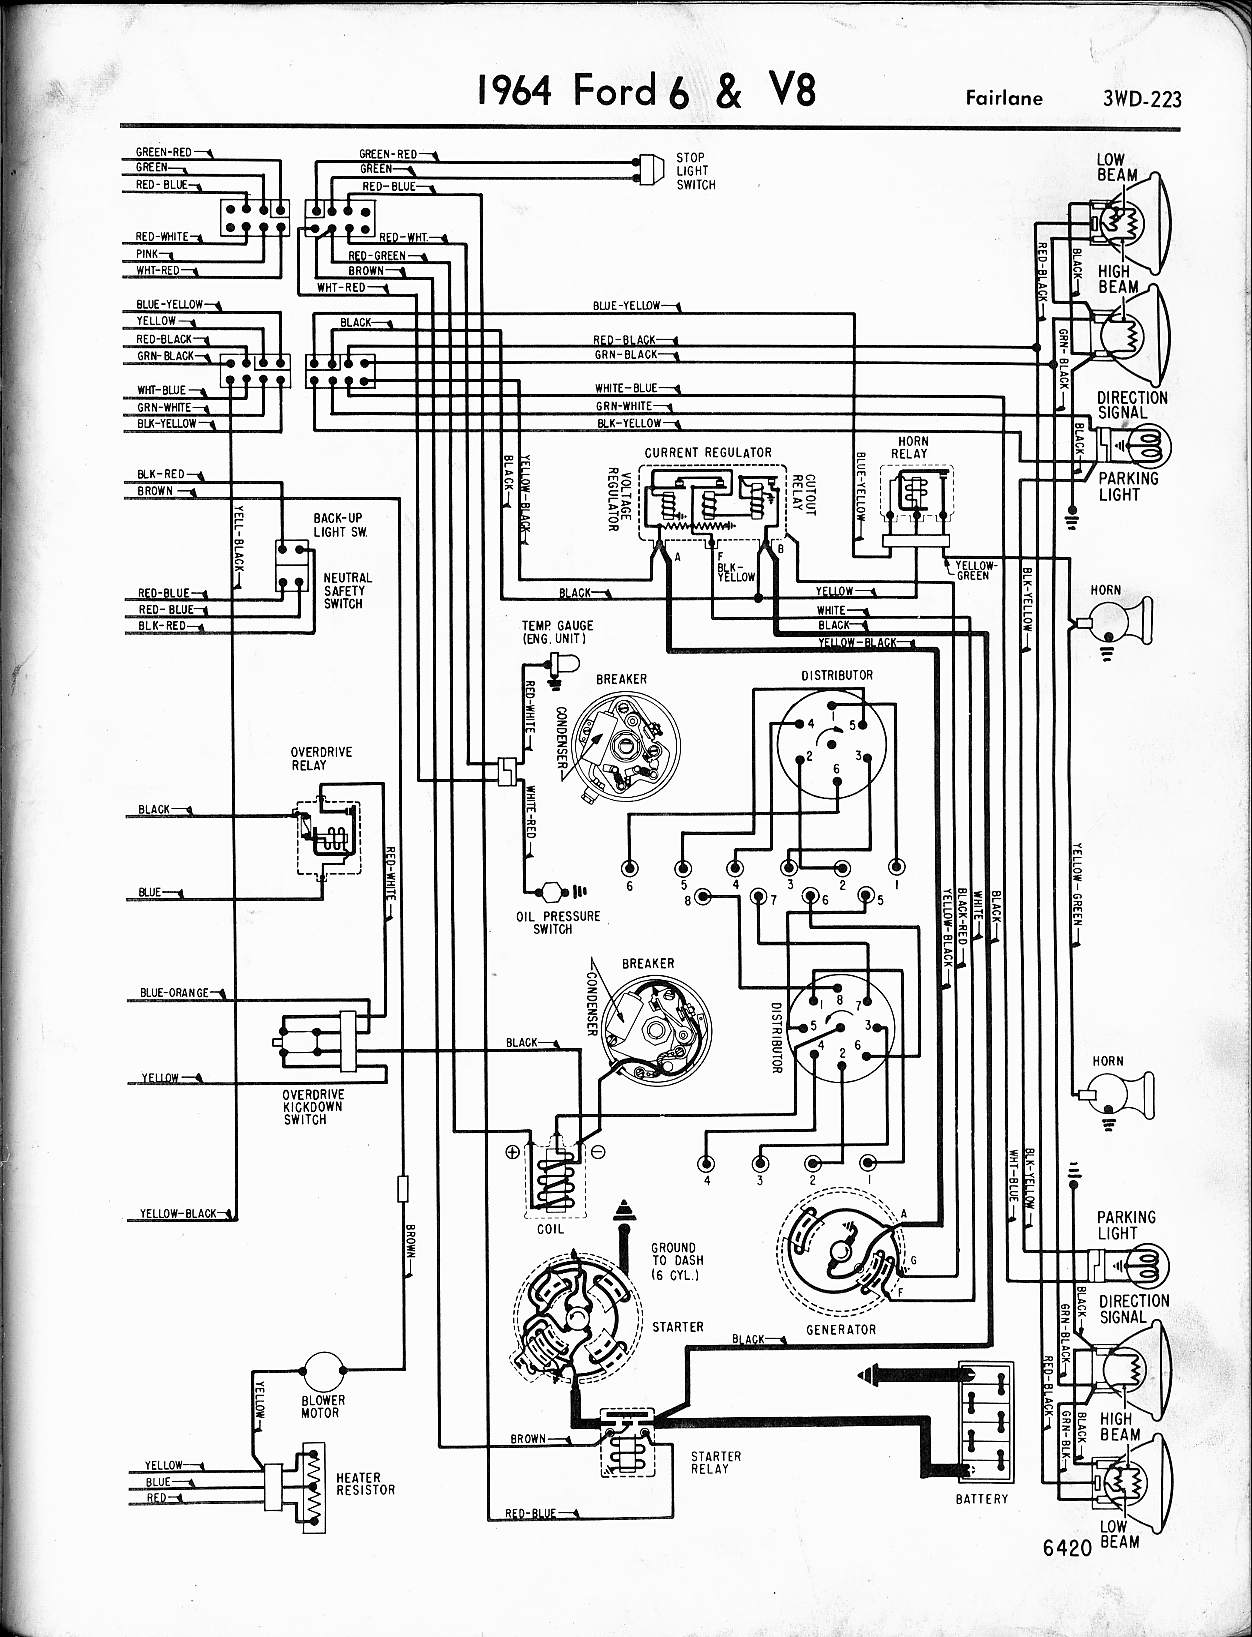 [SCHEMATICS_43NM]  1966 Ford Falcon Wiring 1999 F 150 Xlt Fuse Box -  vww.kelengkeng.astrea-construction.fr | 1966 Falcon Wiring Diagrams |  | ASTREA CONSTRUCTION